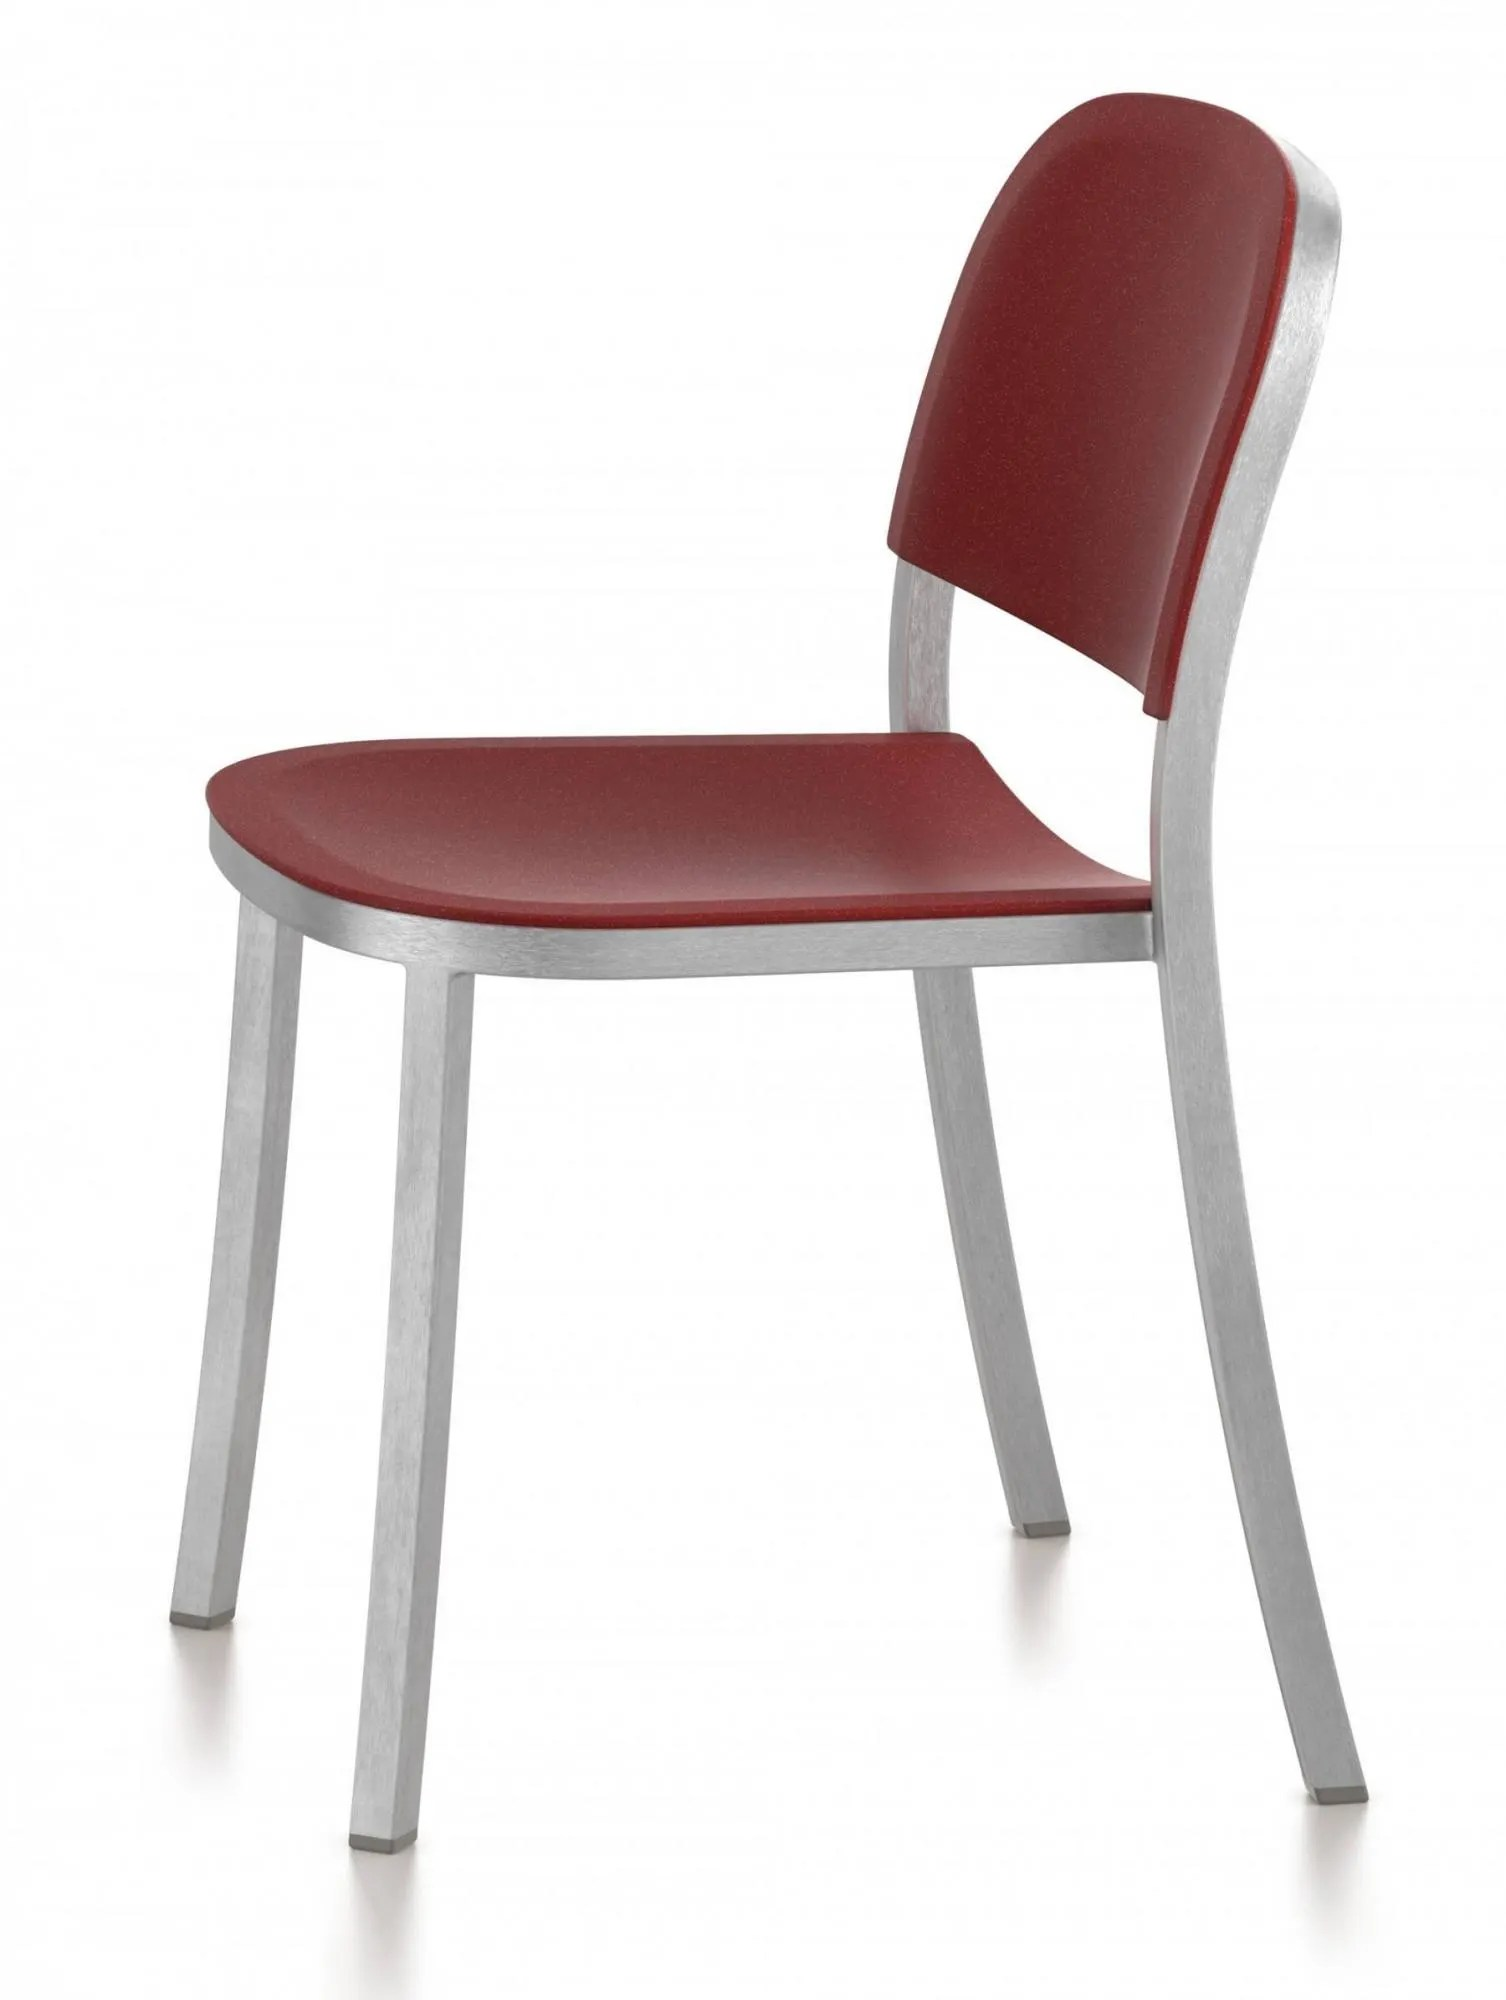 Emeco 1 INCH Stacking Side Chair By Jasper Morrison On